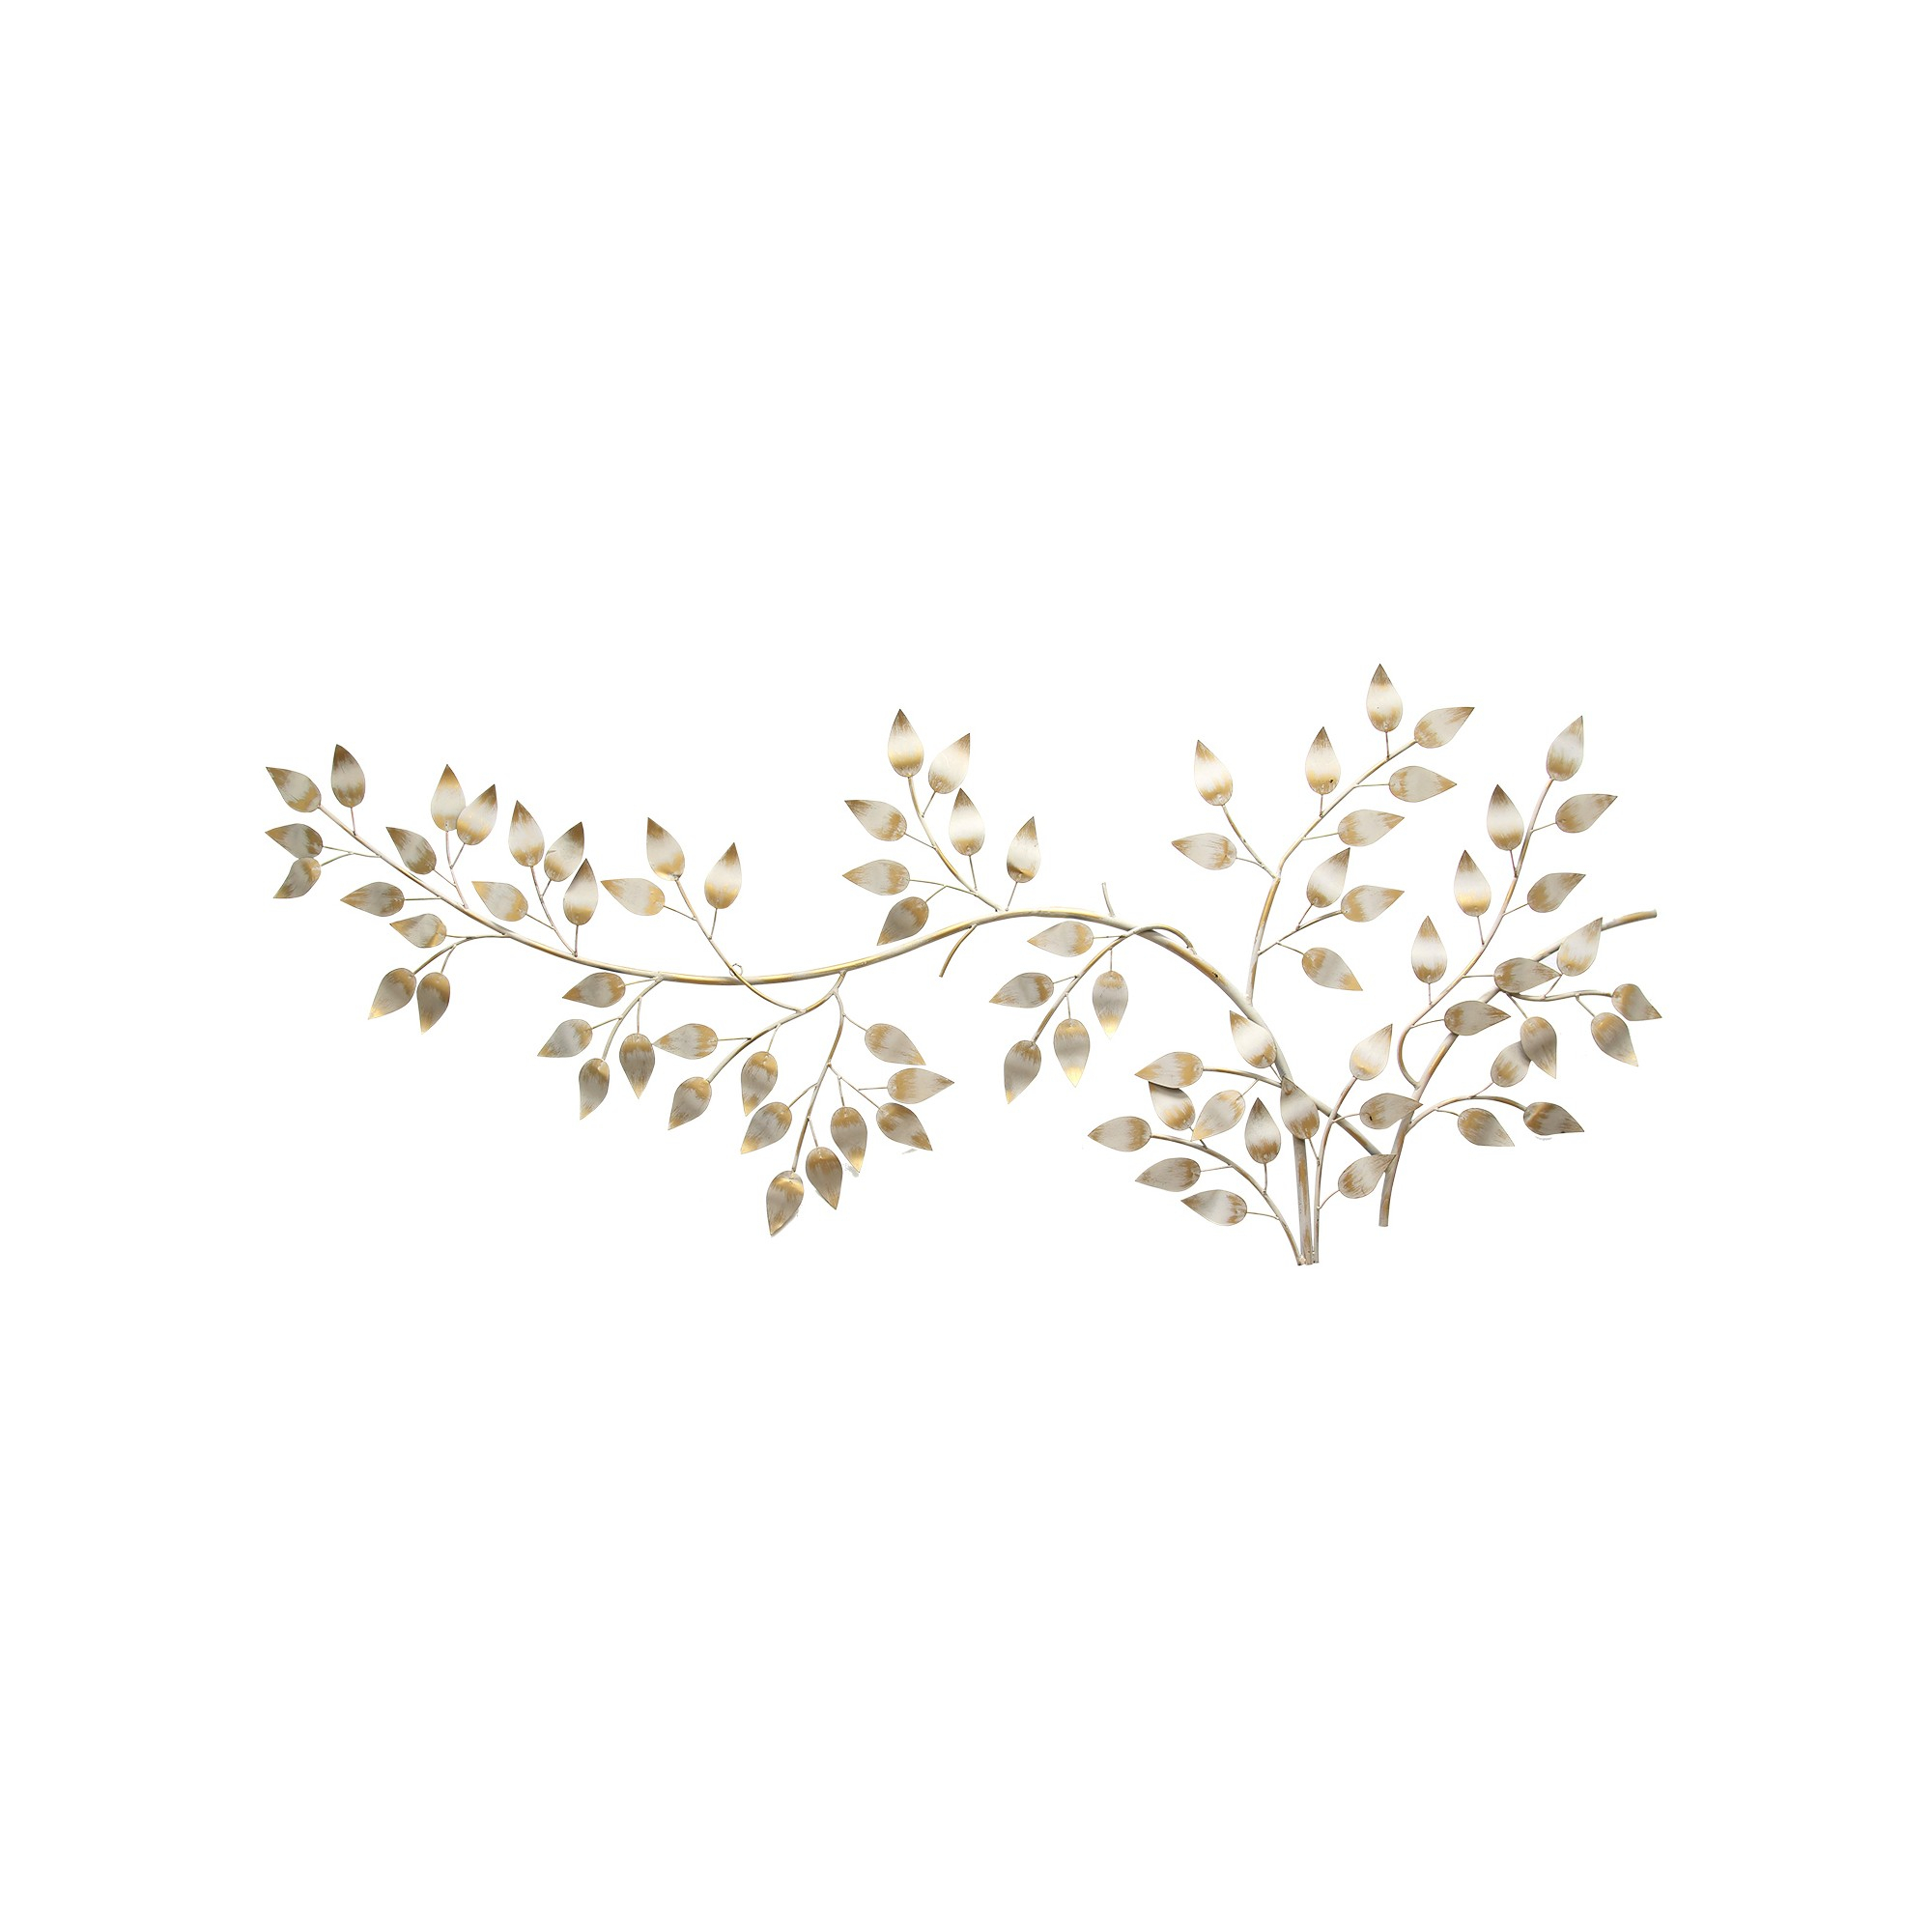 Stratton Home Decor Brushed Gold Flowing Leaves Wall Decor in Flowing Leaves Wall Decor (Image 25 of 30)